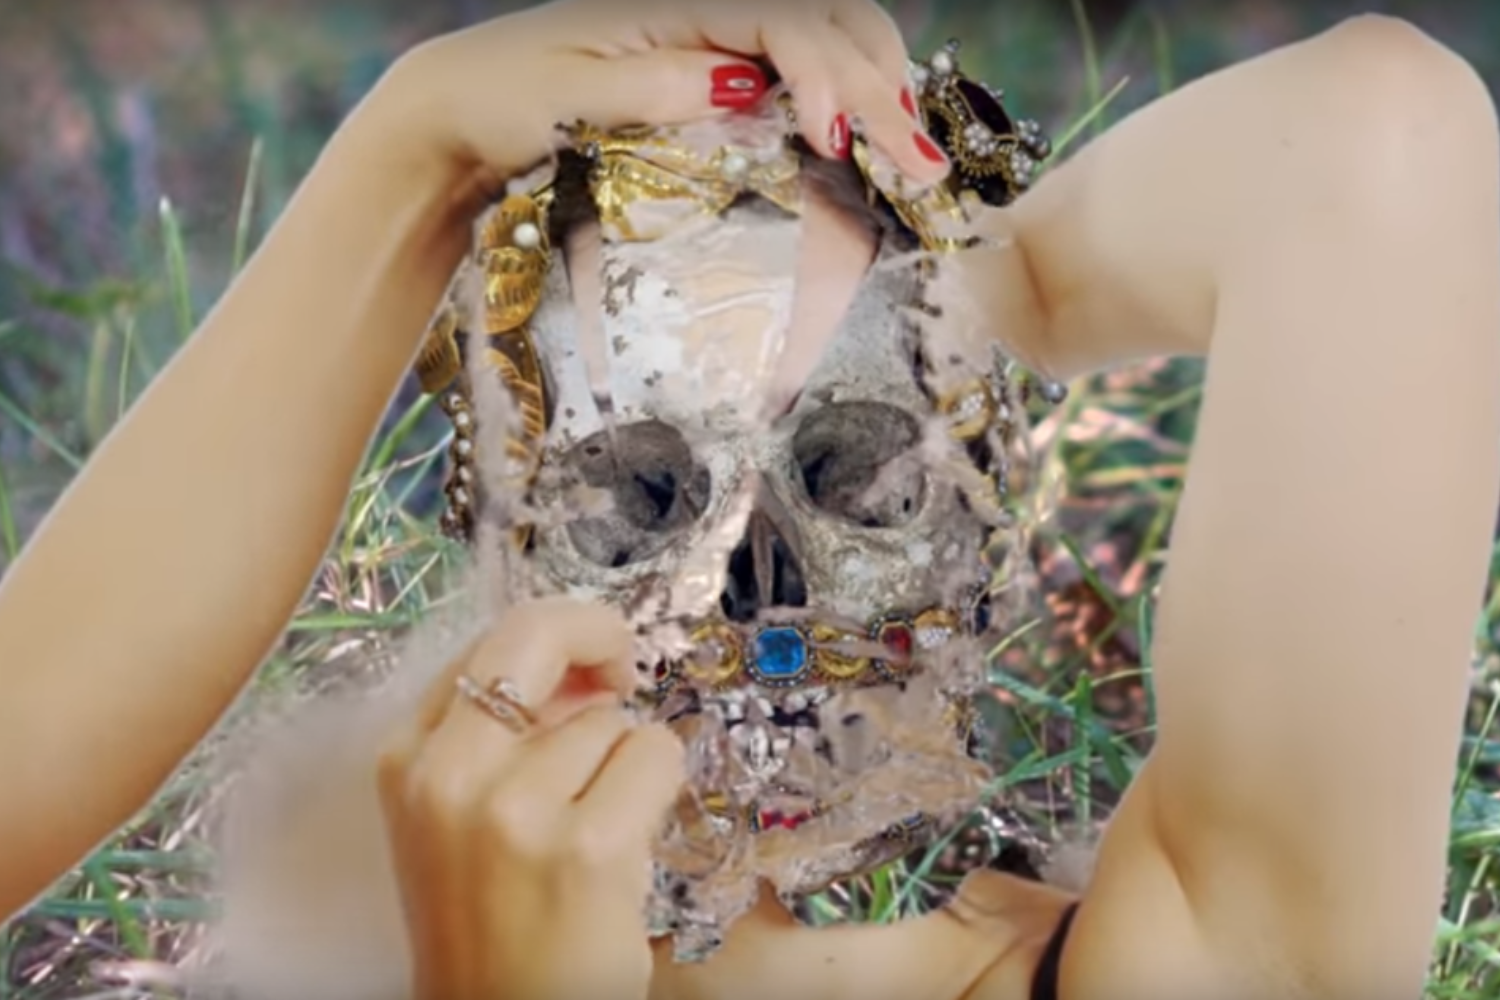 Lee Ranaldo gets psychedelic in the video for 'Uncle Skeleton'